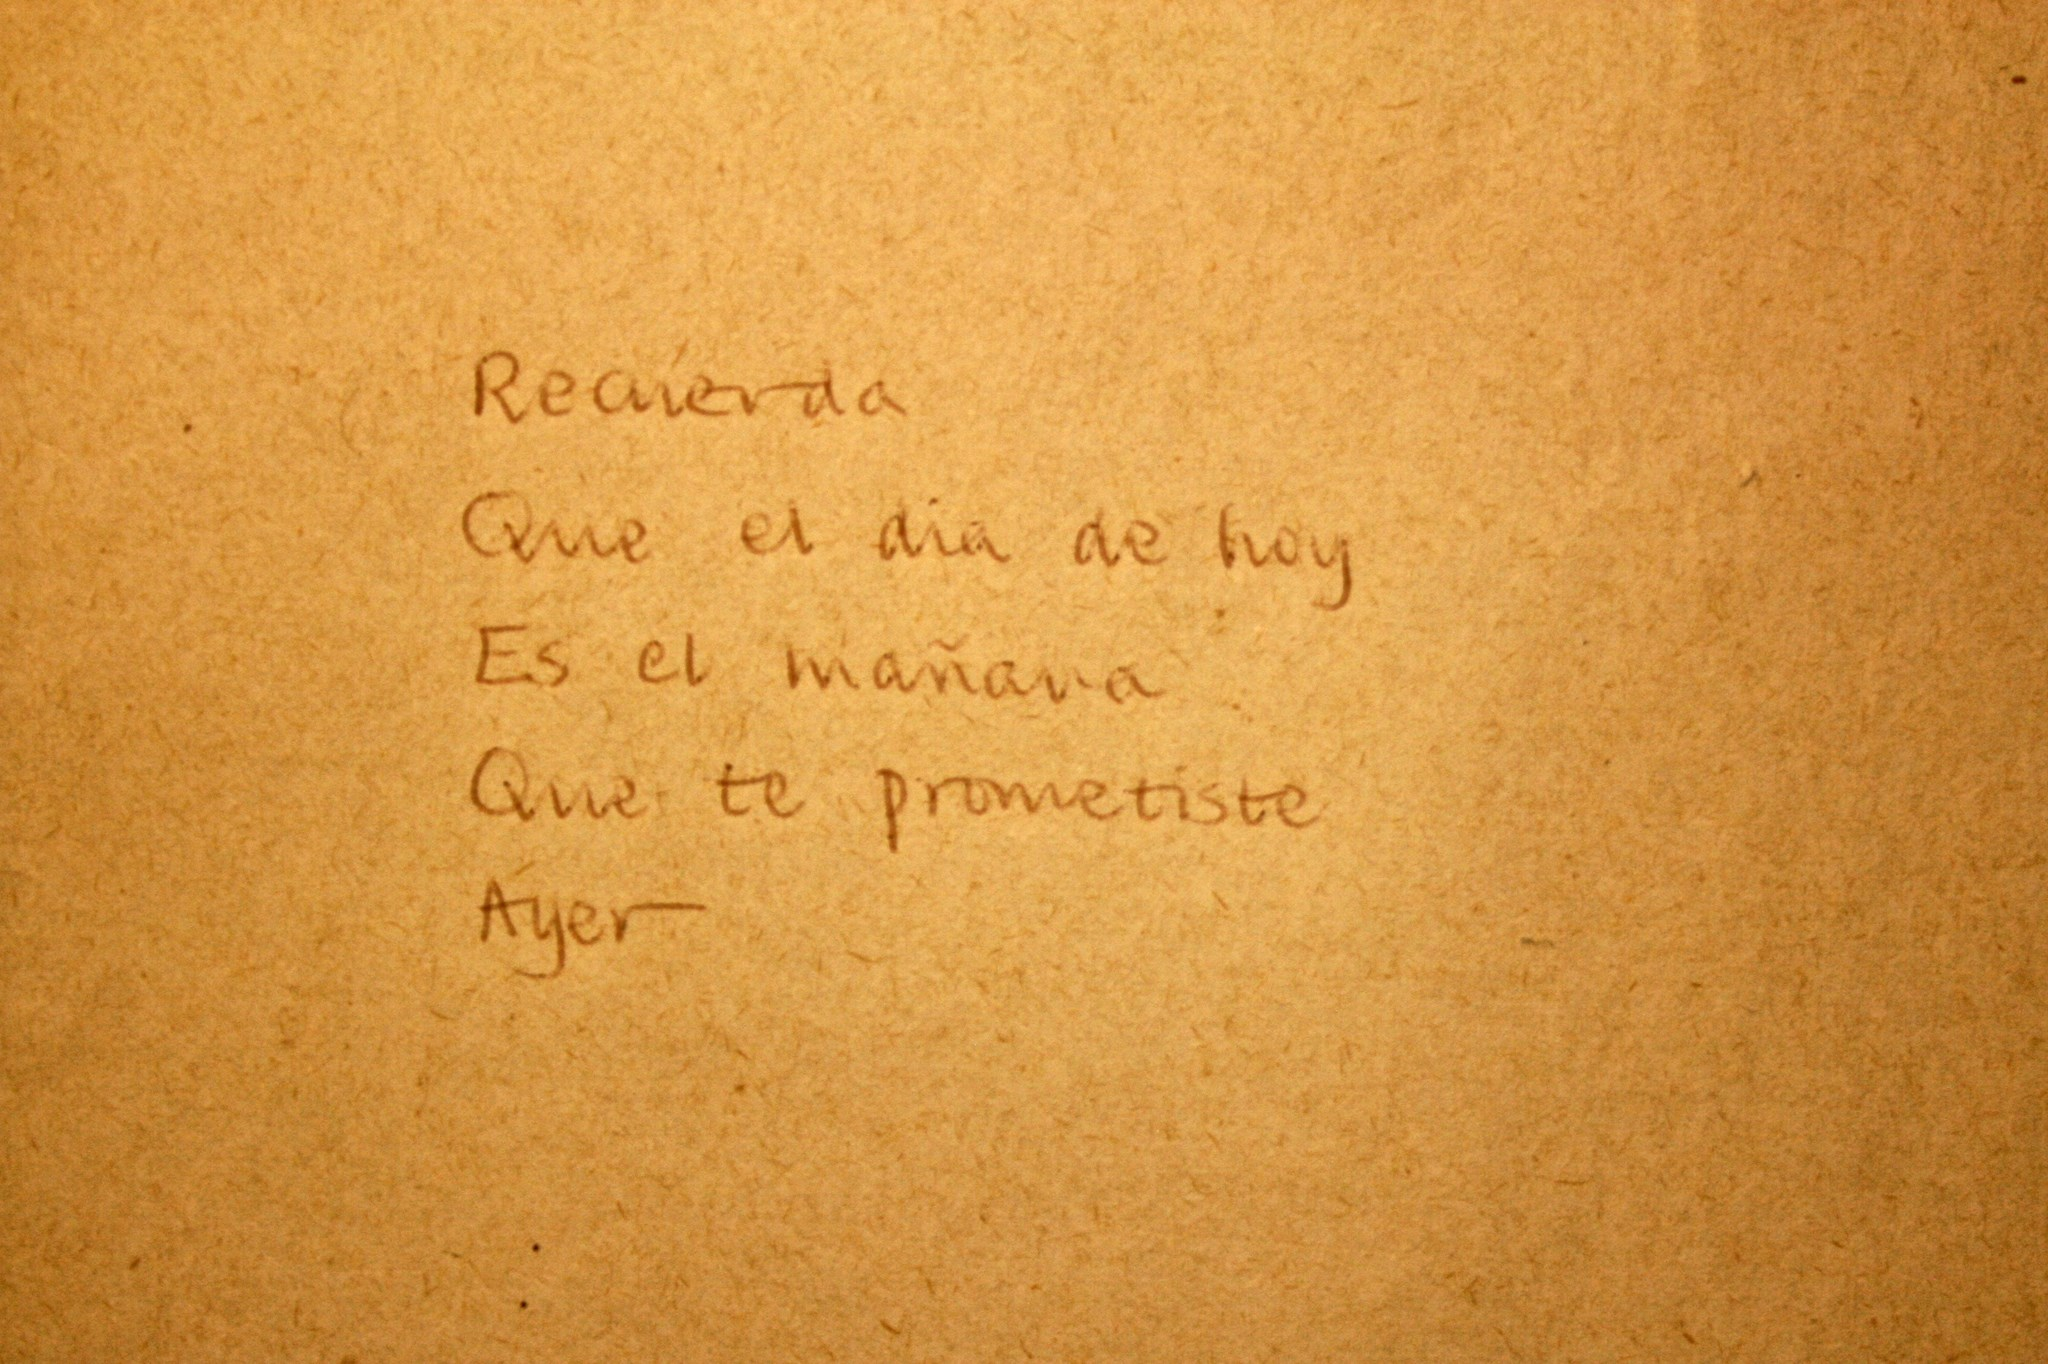 A translation by Felix  into Spanish of little poem in the 1980's - written in his nice handwriting.